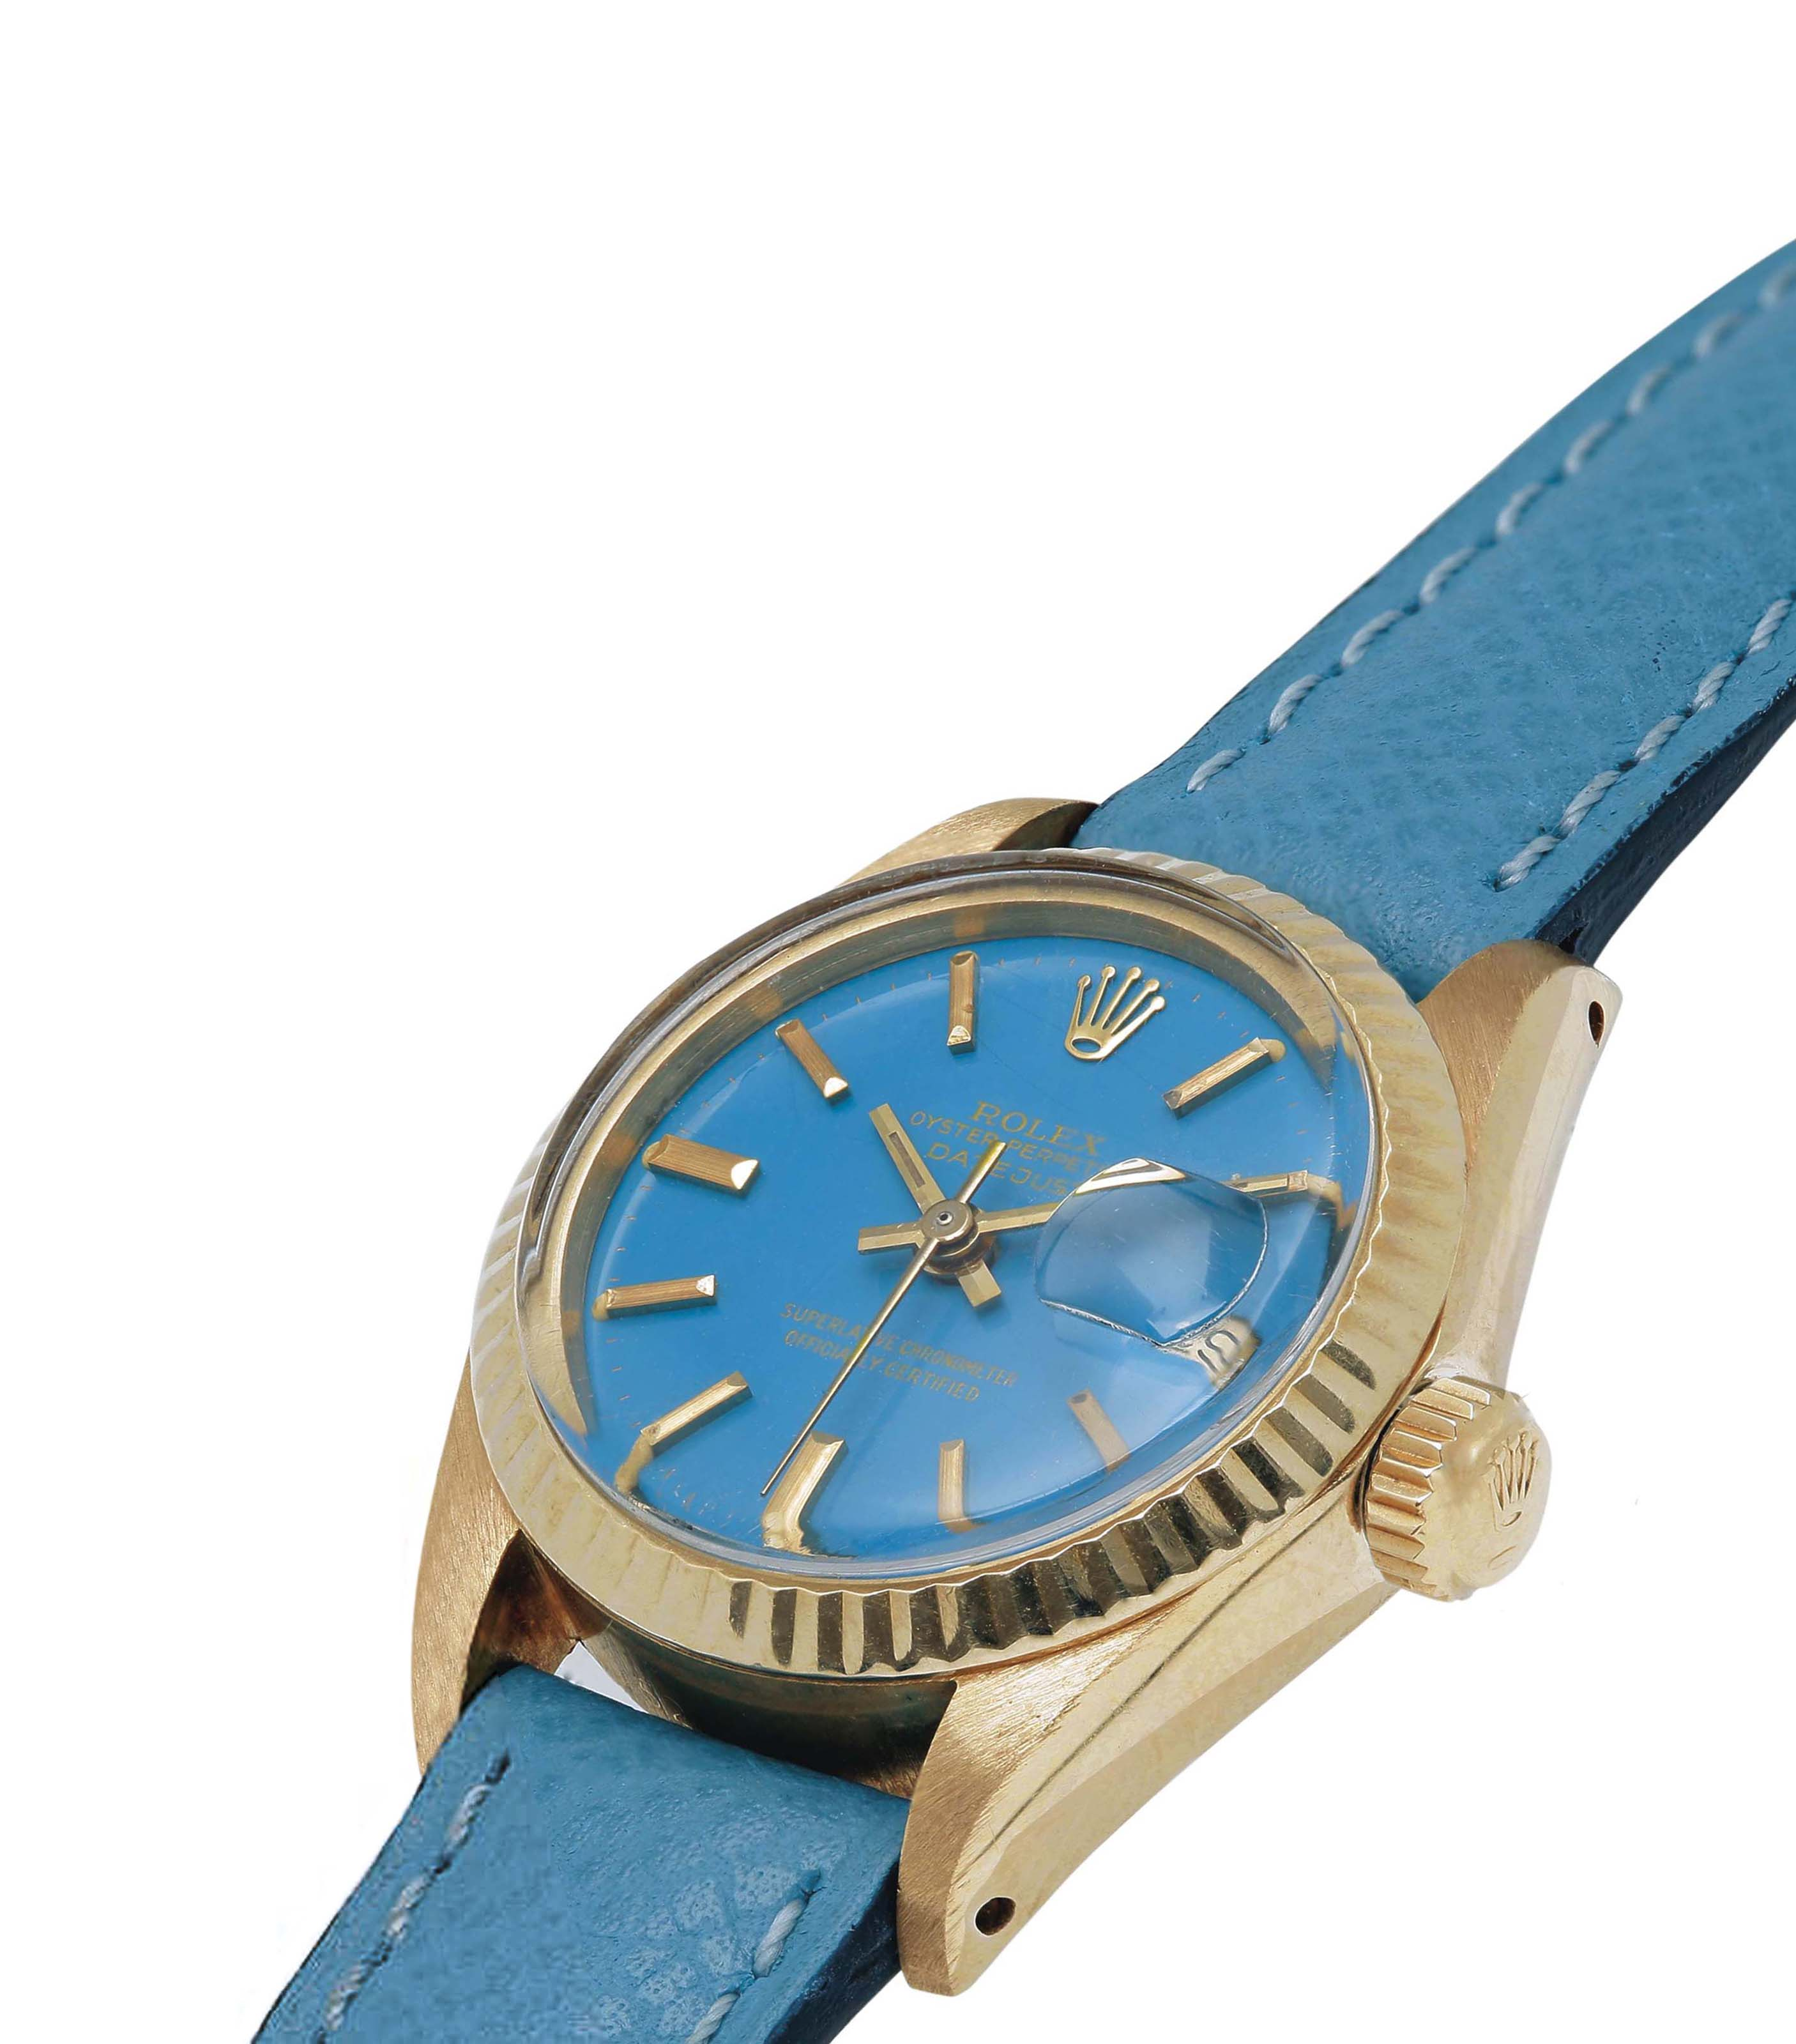 ROLEX. A LADY'S 18K GOLD AUTOMATIC WRISTWATCH WITH SWEEP CENTRE SECONDS, DATE AND TURQUOISE DIAL SIGNED ROLEX, OYSTER PERPETUAL DATEJUST LADY, REF.6917, CASE NO.5'299'268, CIRCA 1977